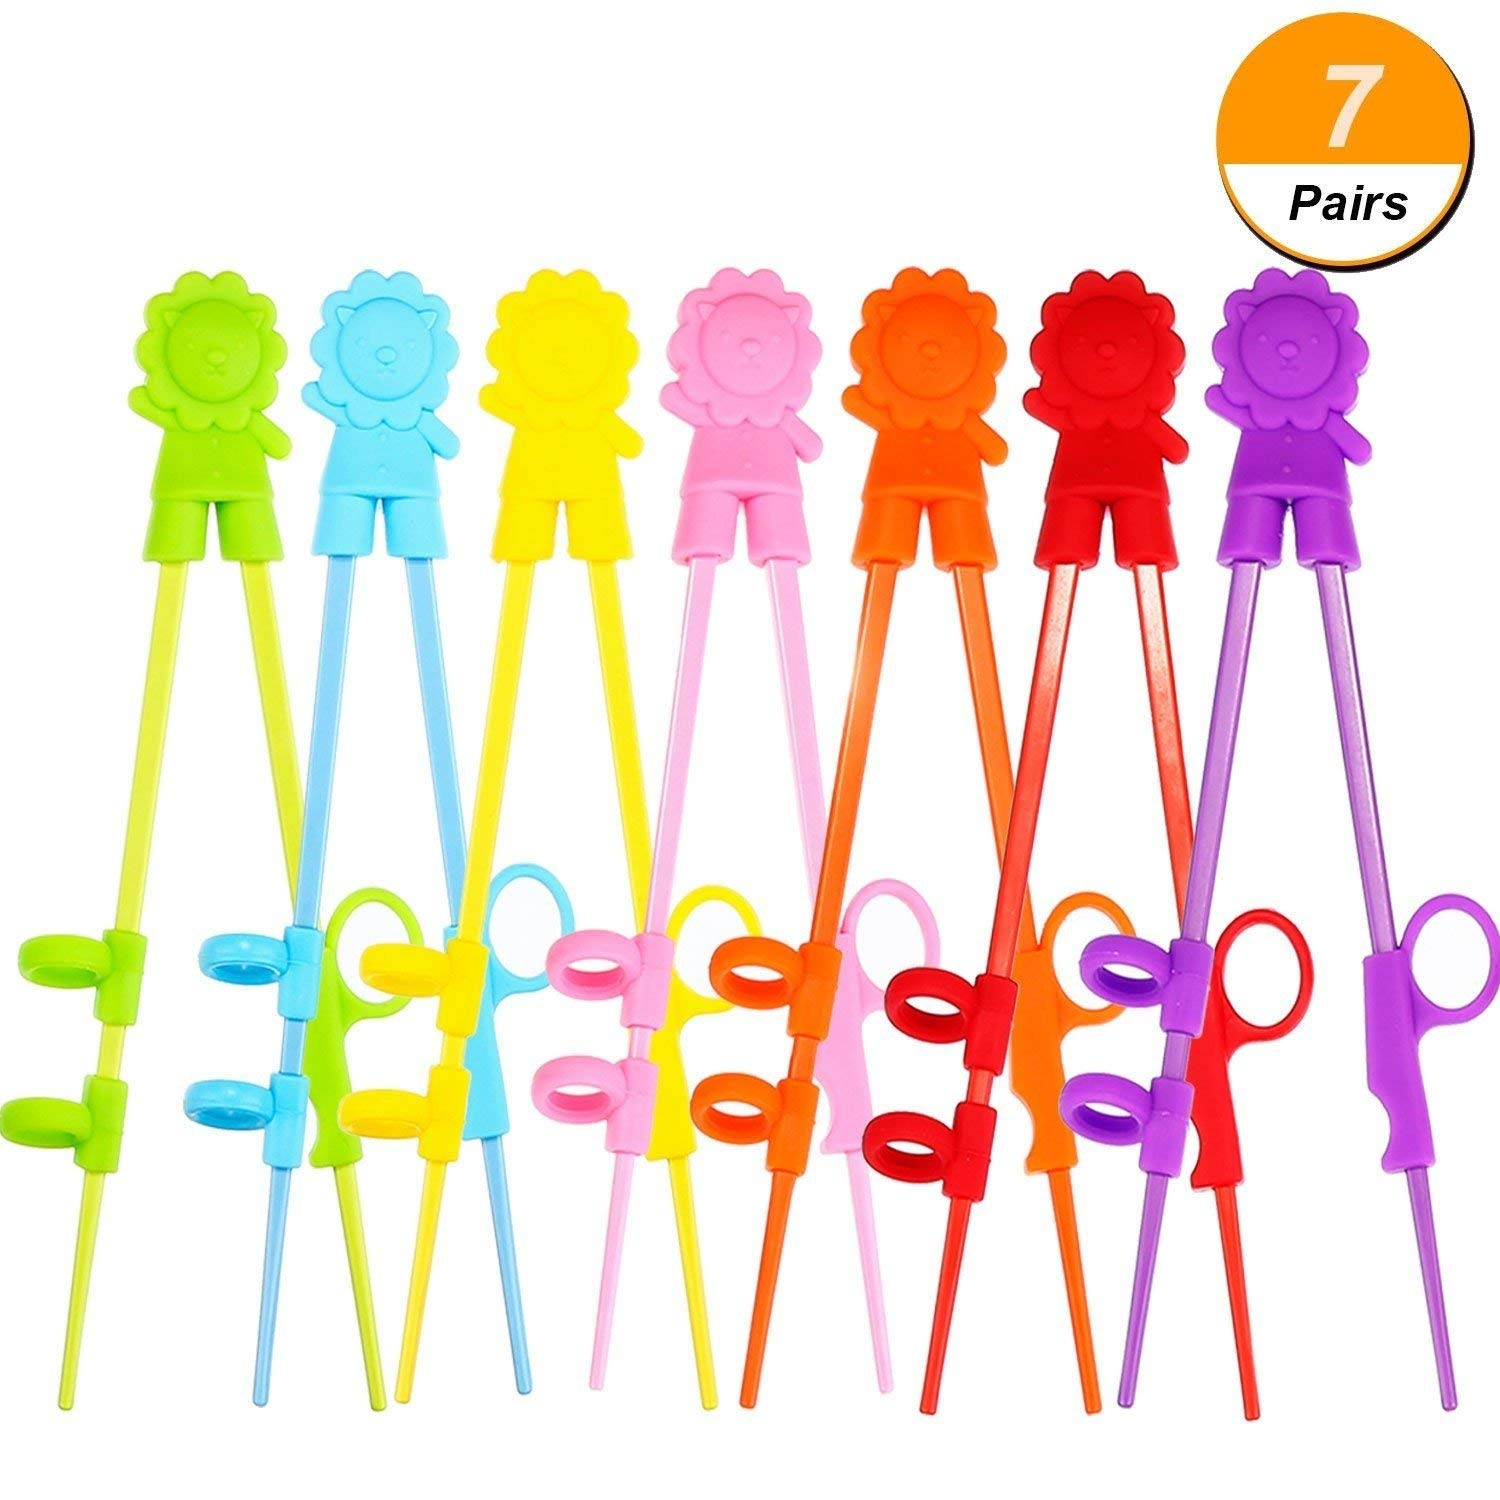 BBTO 7 Pairs Colorful Training Chopsticks Set with Attachable Learning Chopsticks Helper for Right or Left-handed Beginners, Kids, Teens or Adults